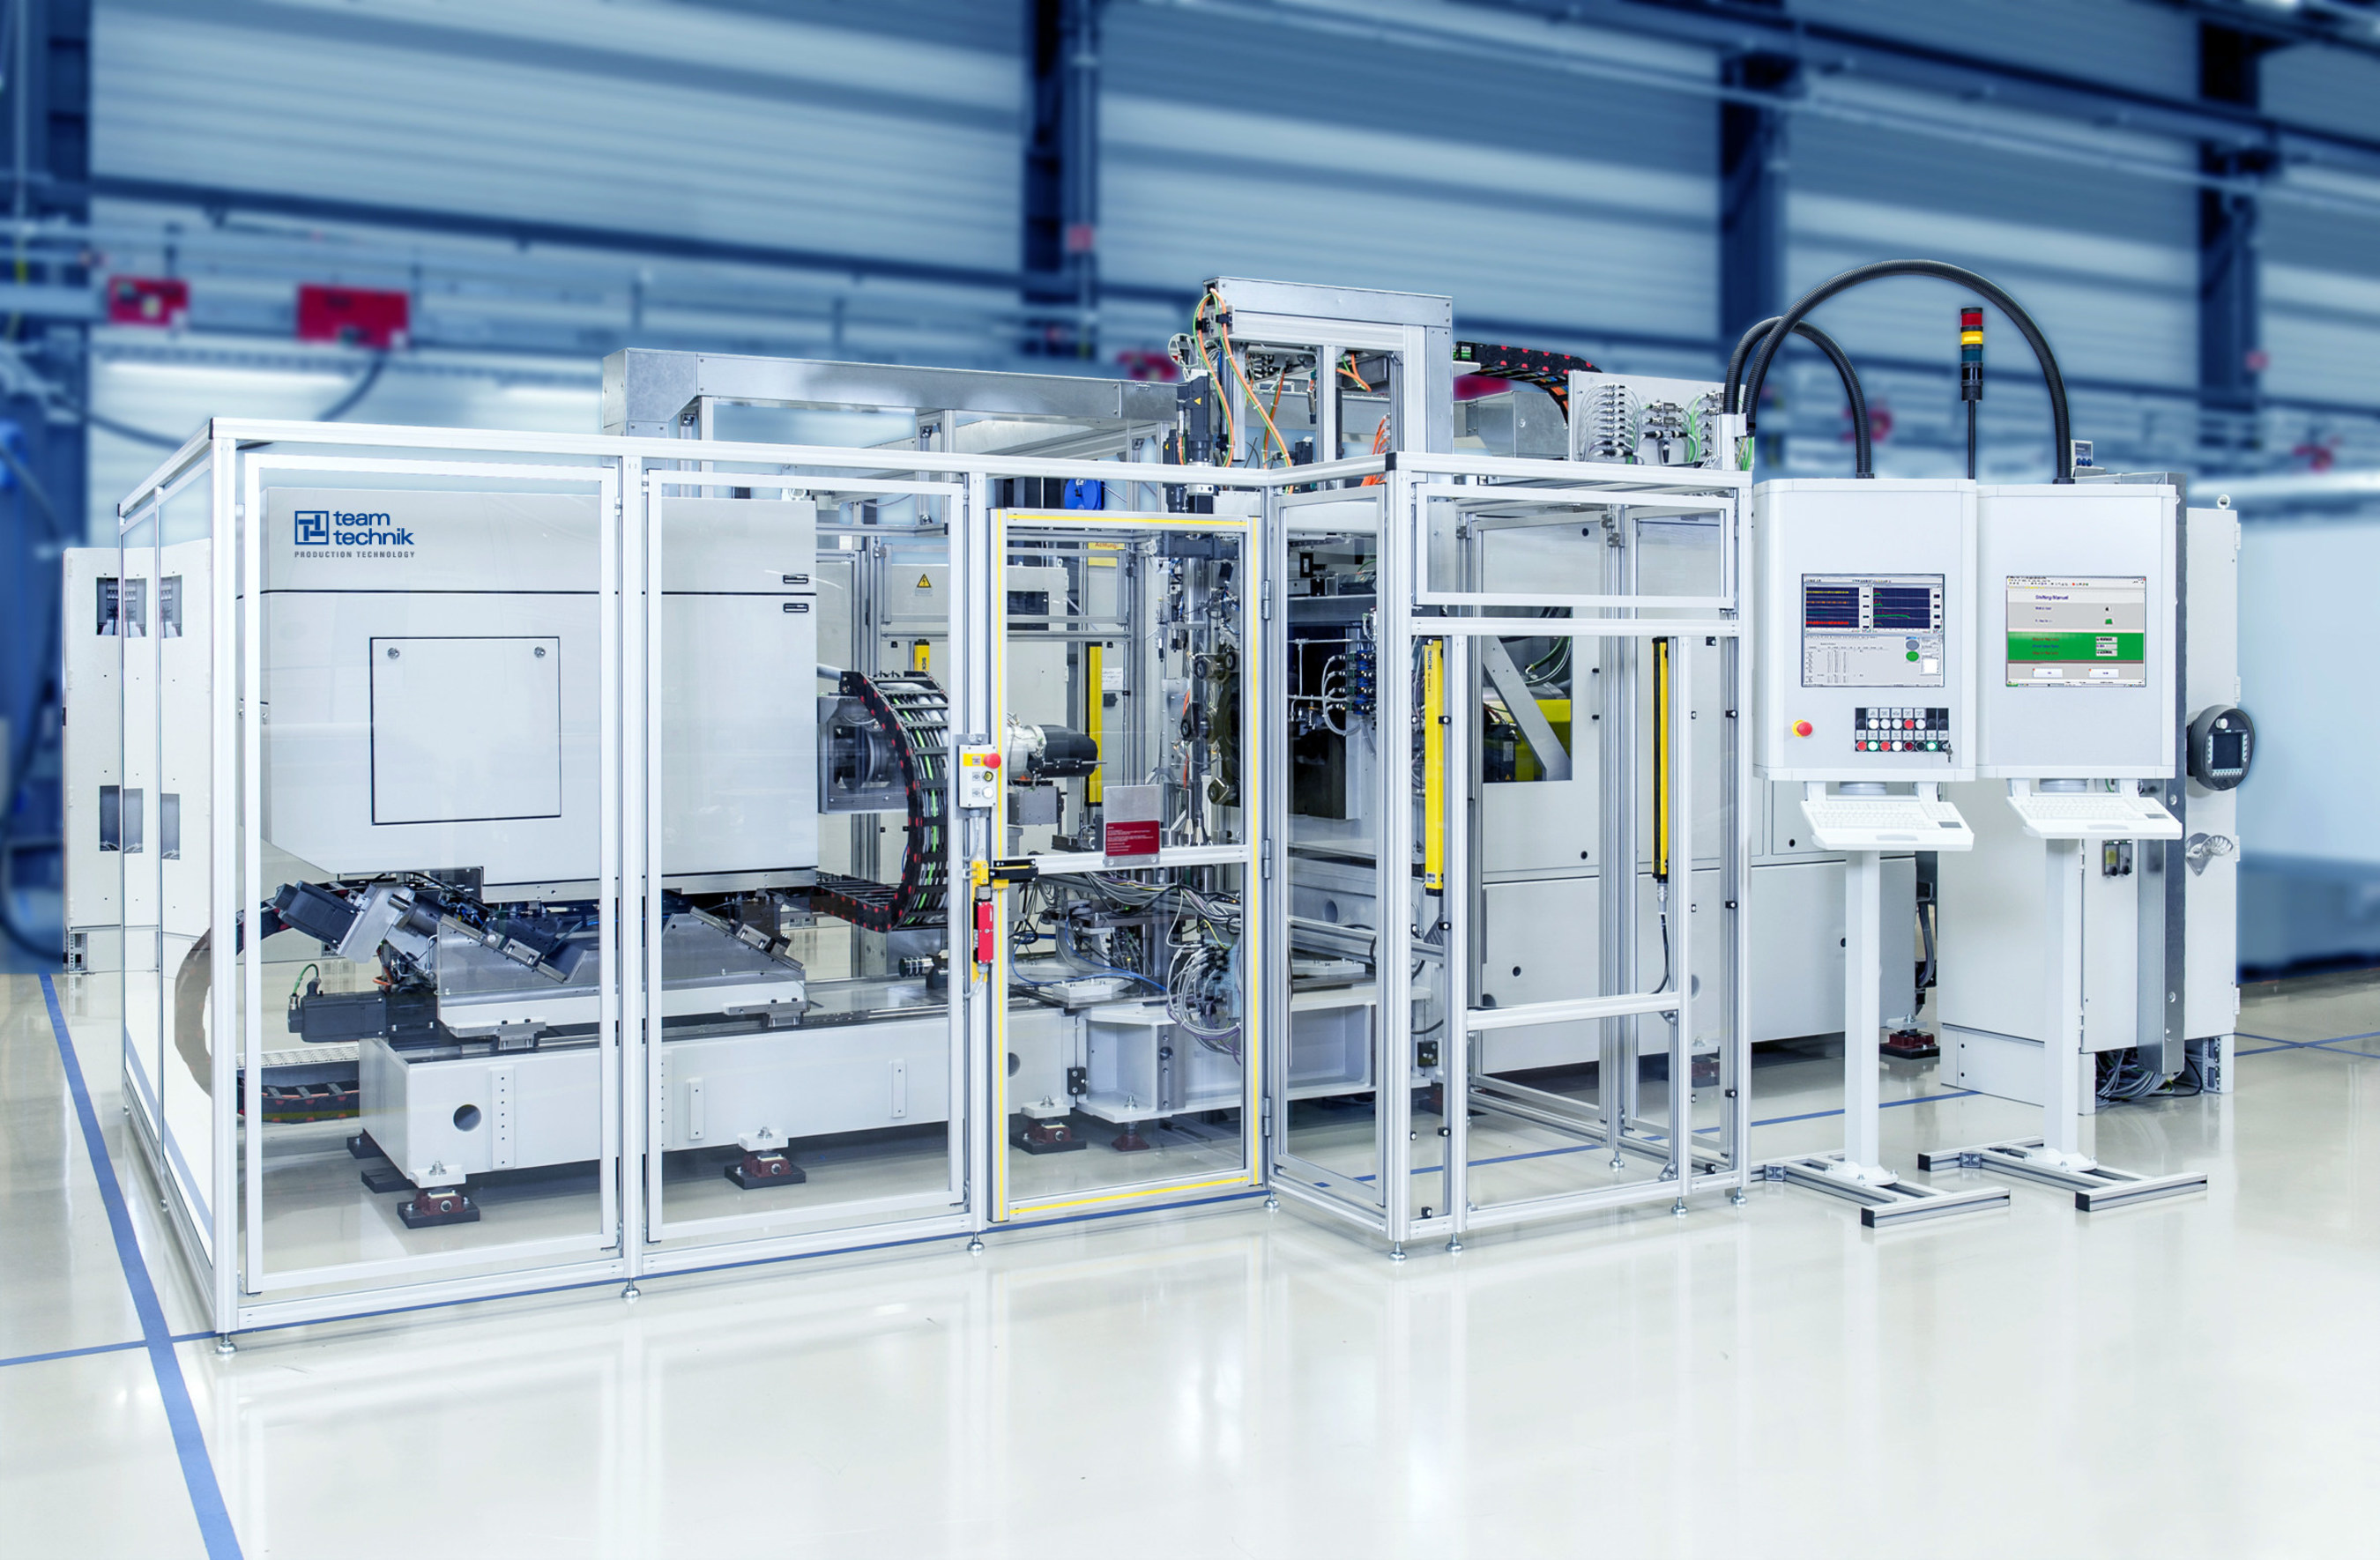 A major order from China: A vote of confidence in teamtechnik ...